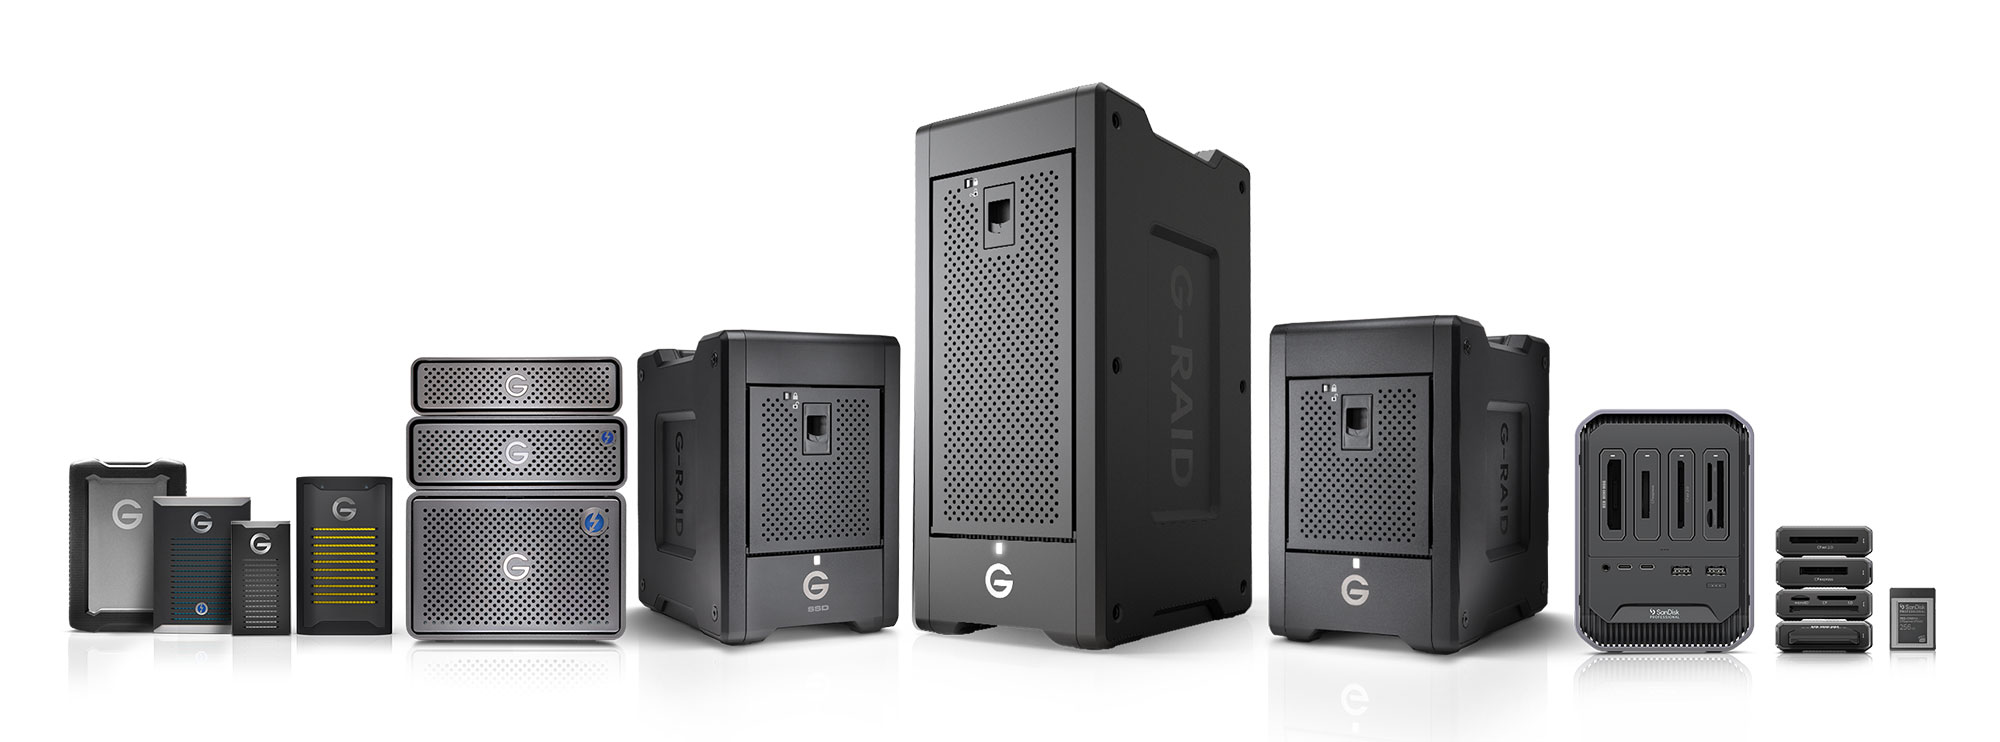 Western Digital launches SanDisk Professional brand